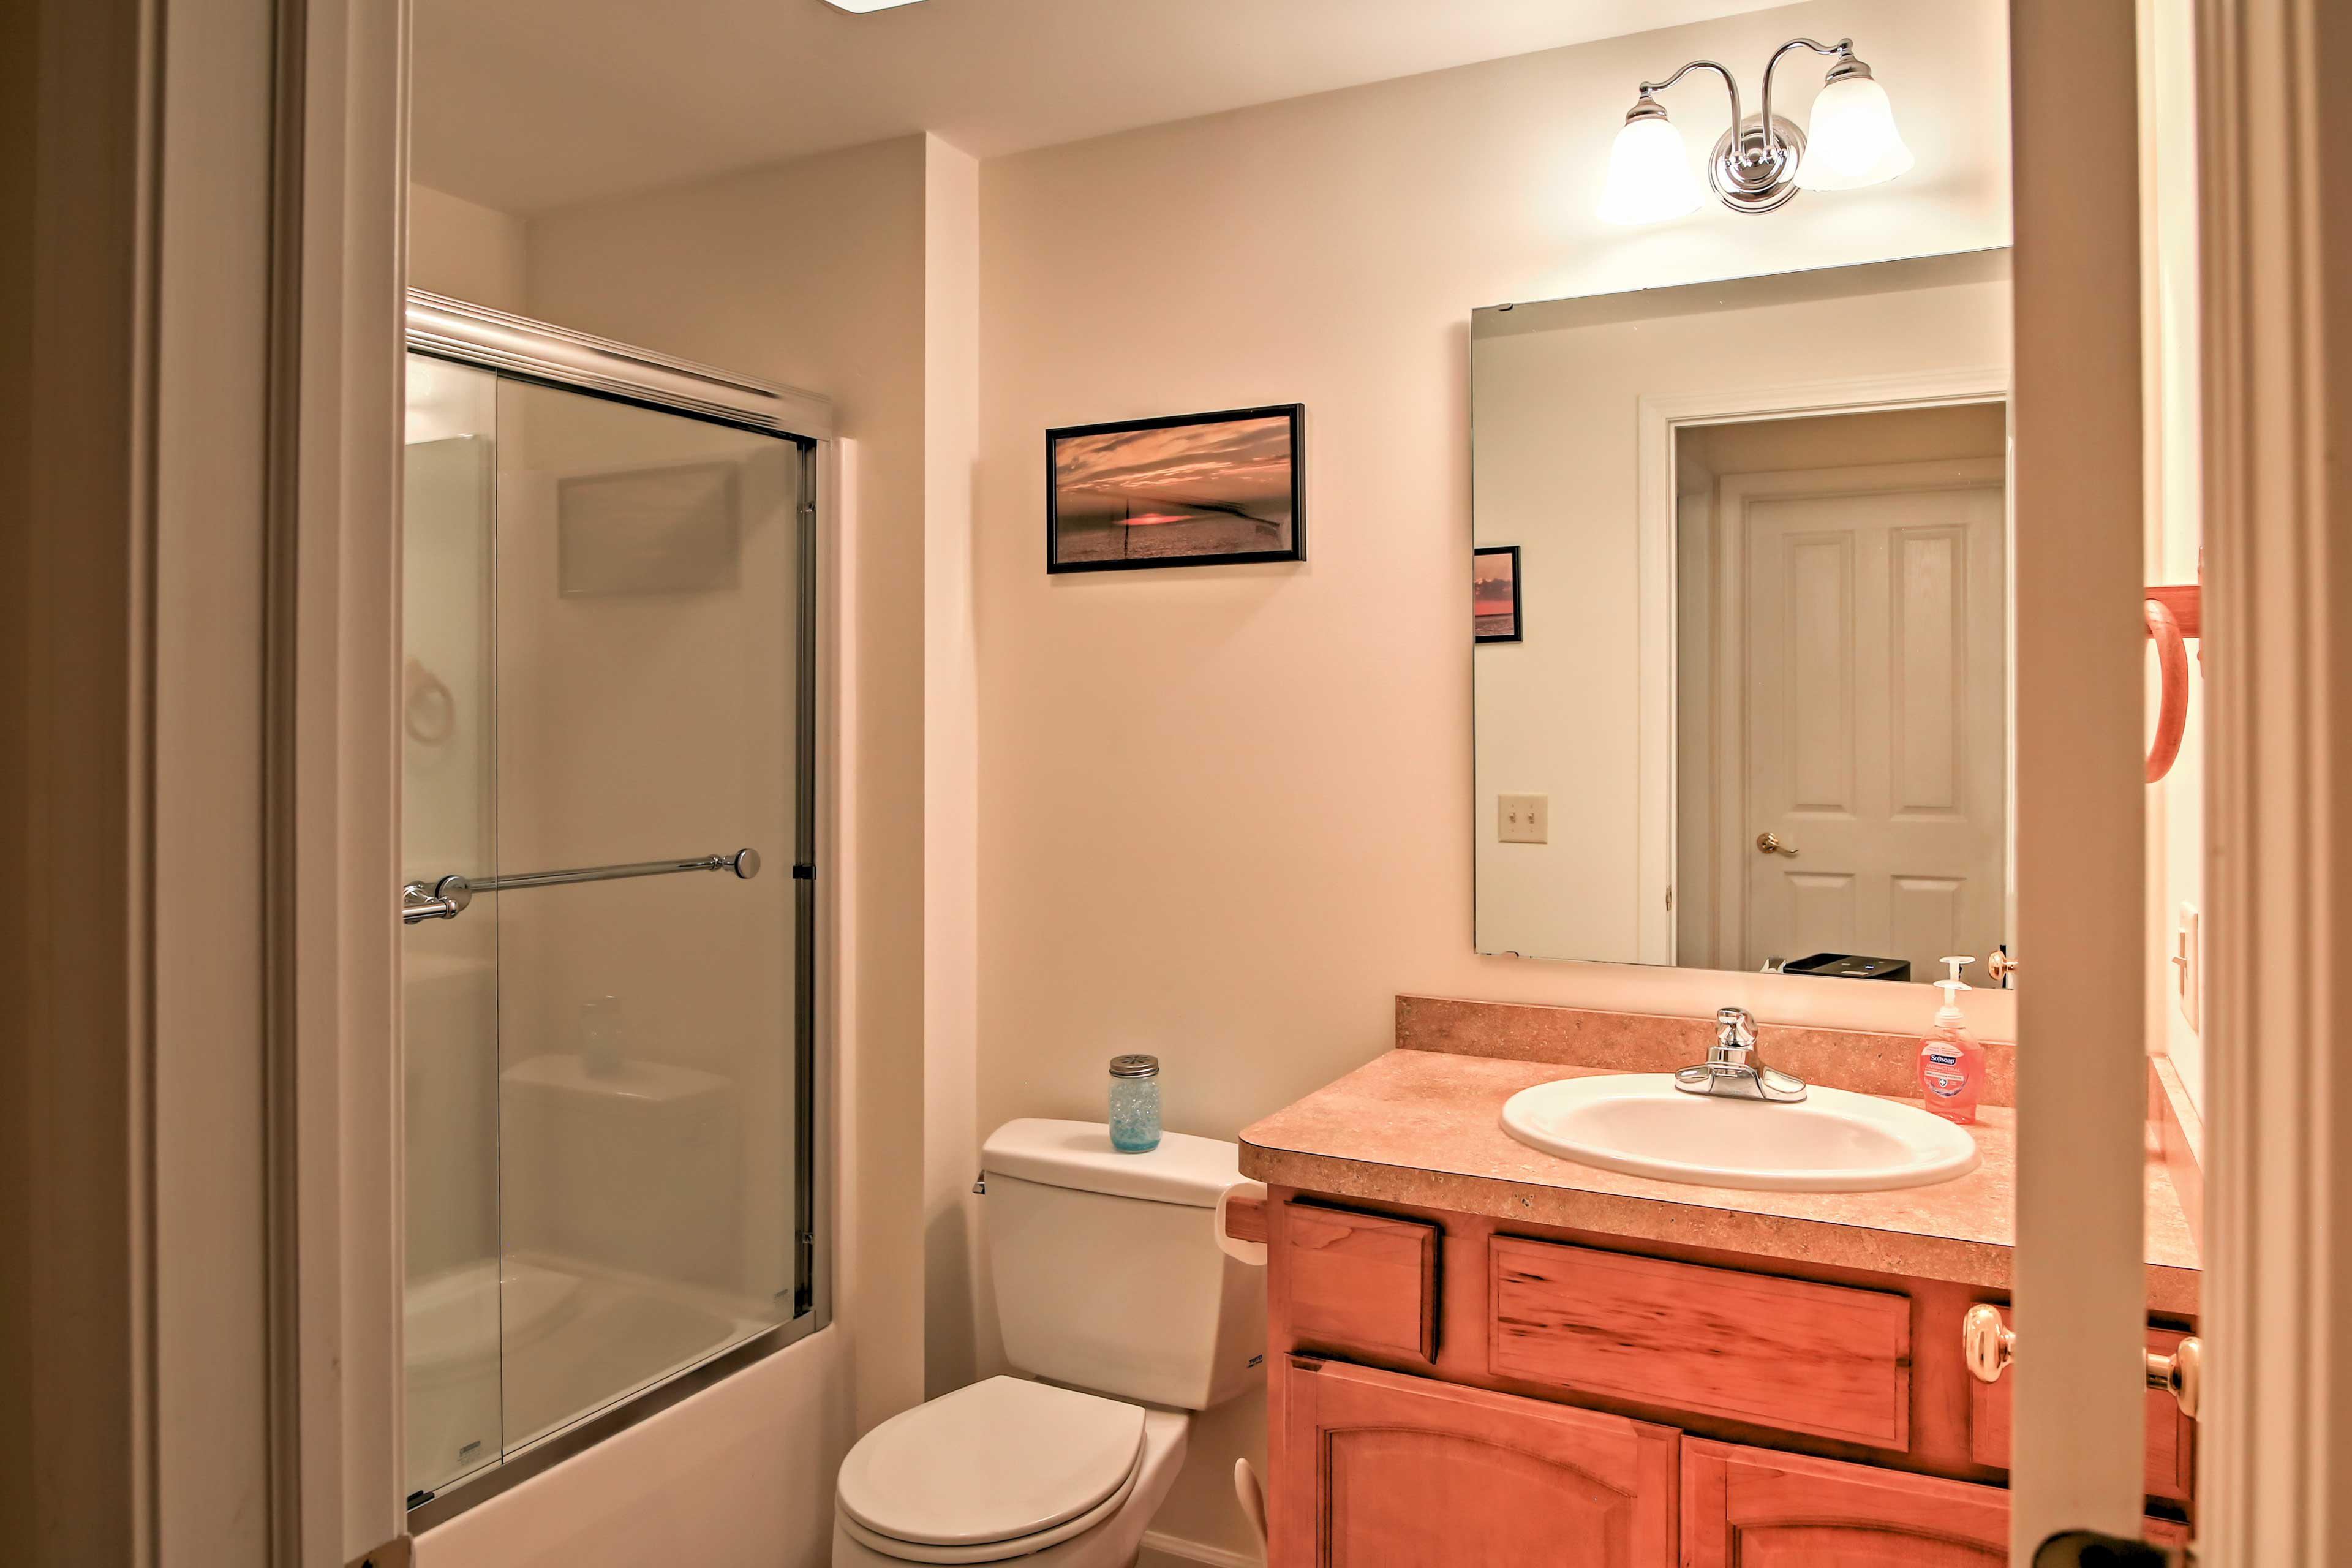 The home includes 3.5 bathrooms.